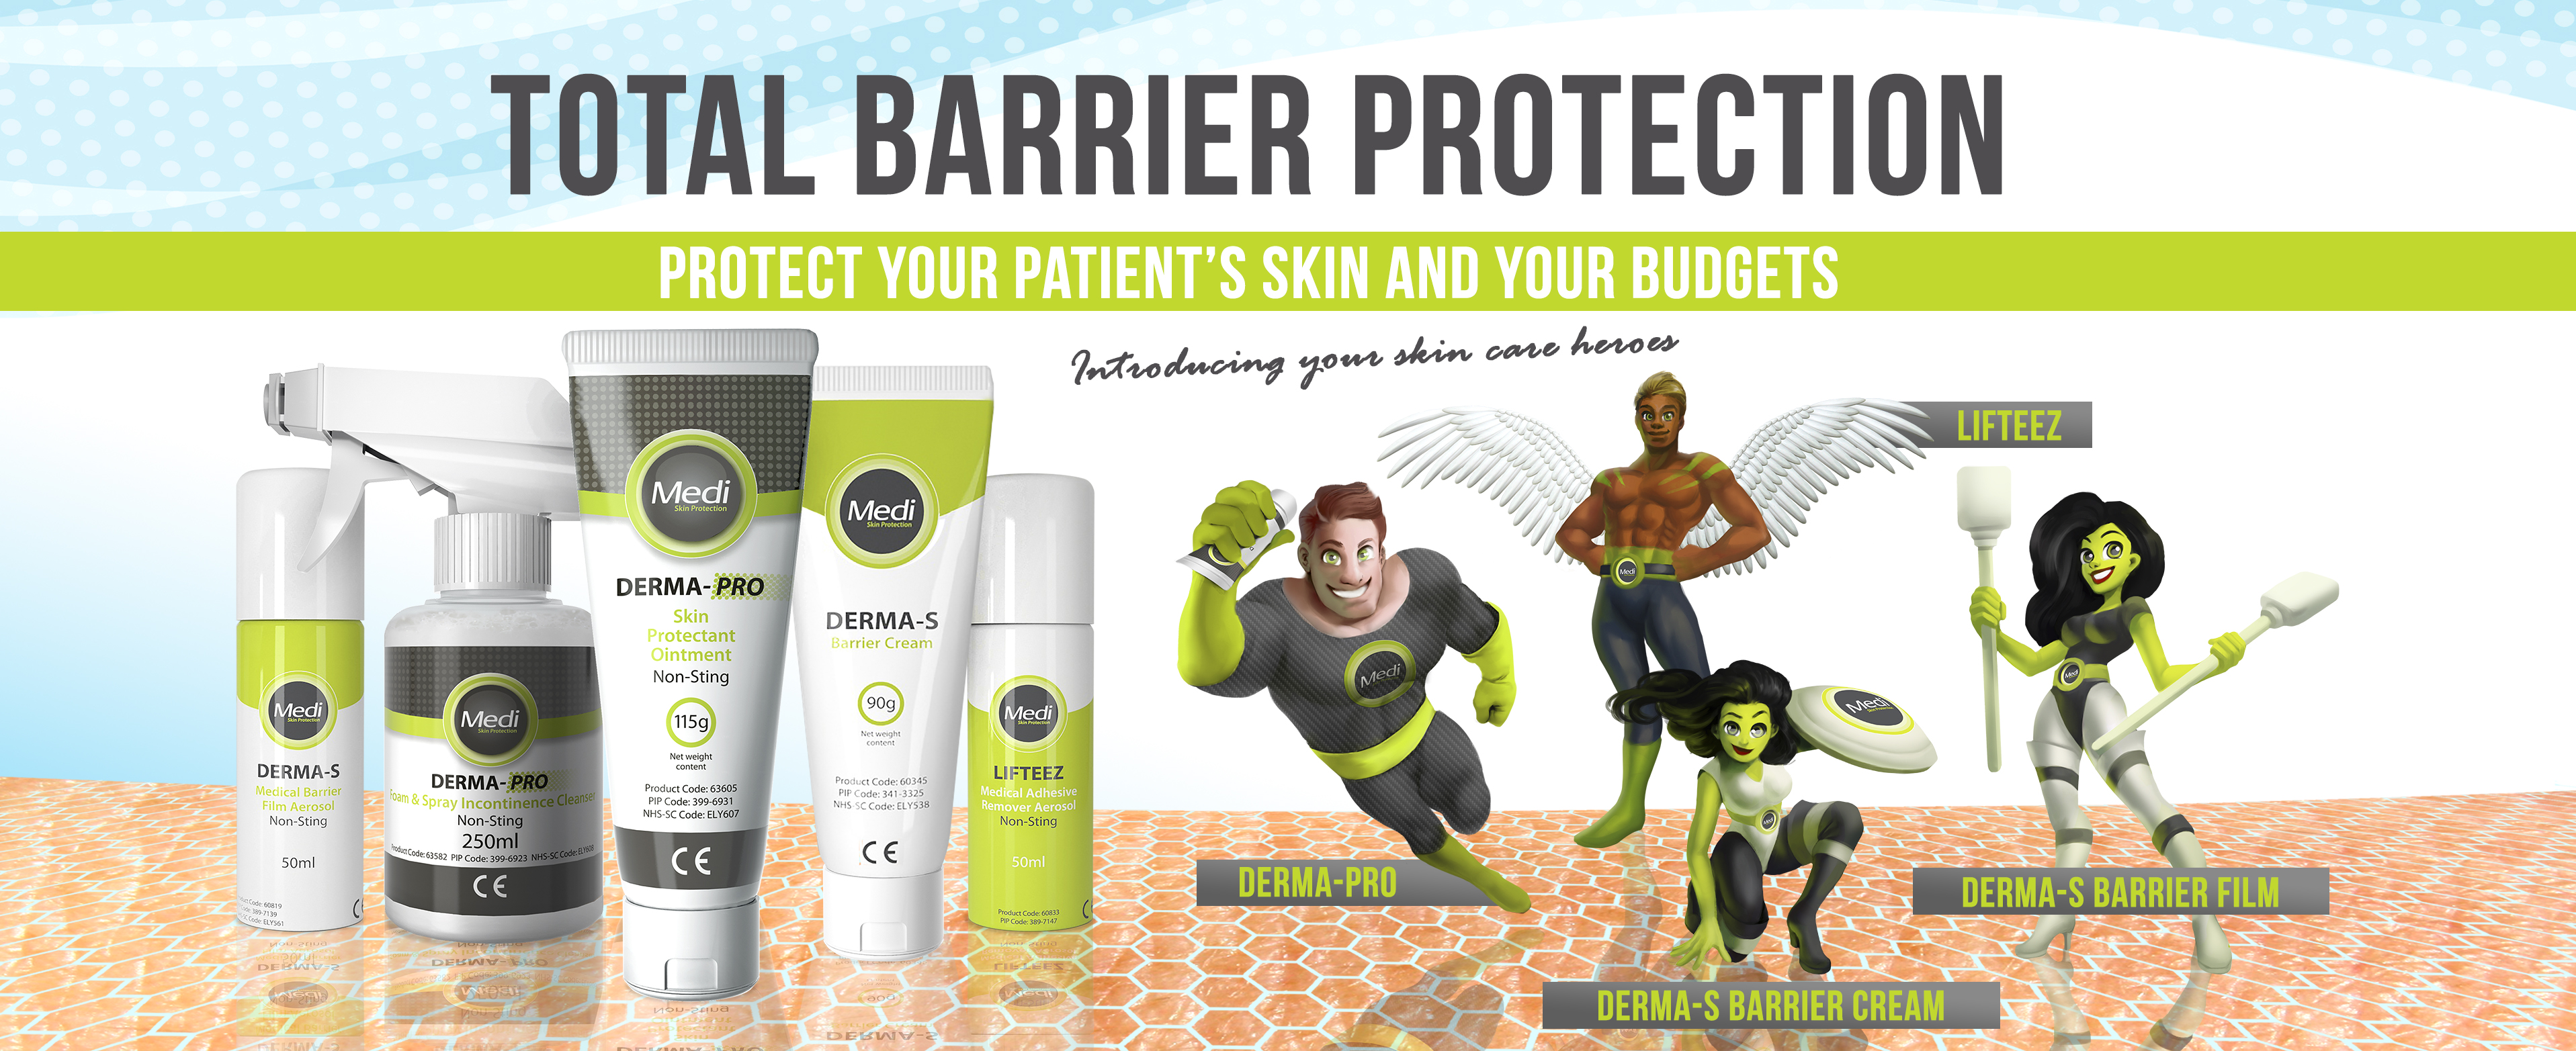 Total Barrier Protection Creative Campaign